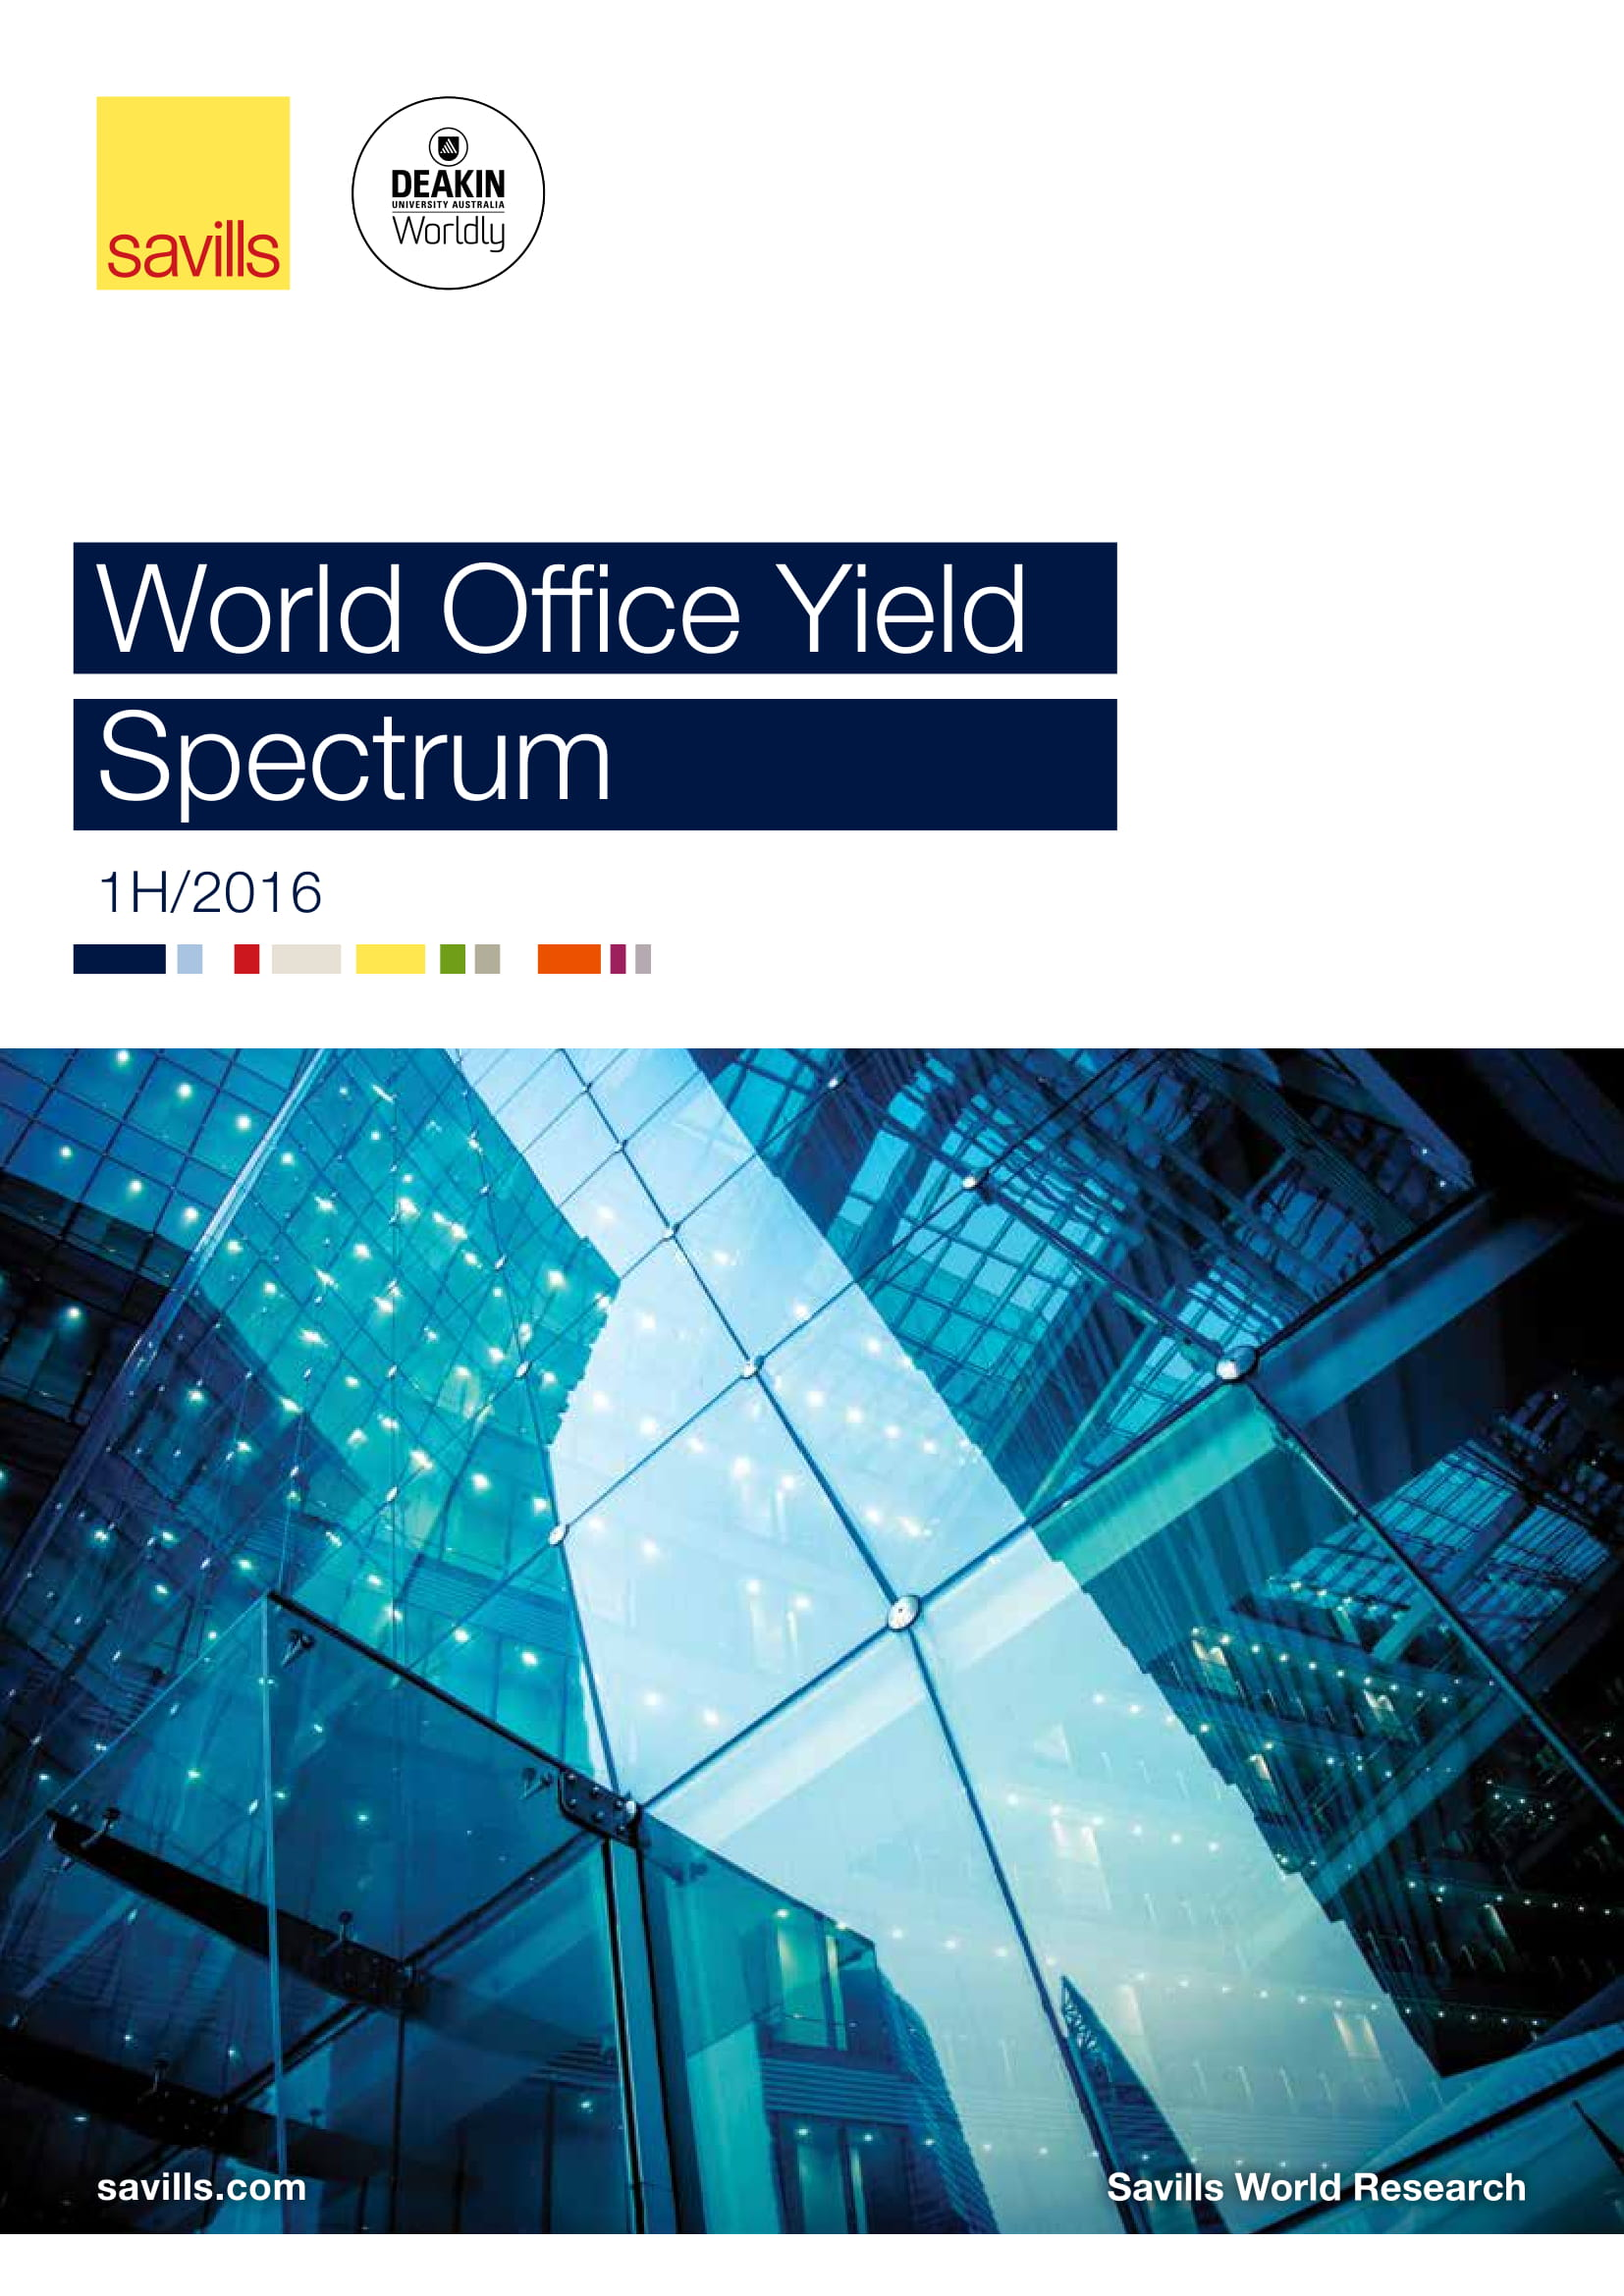 World Office Yield Spectrum 1H 2016